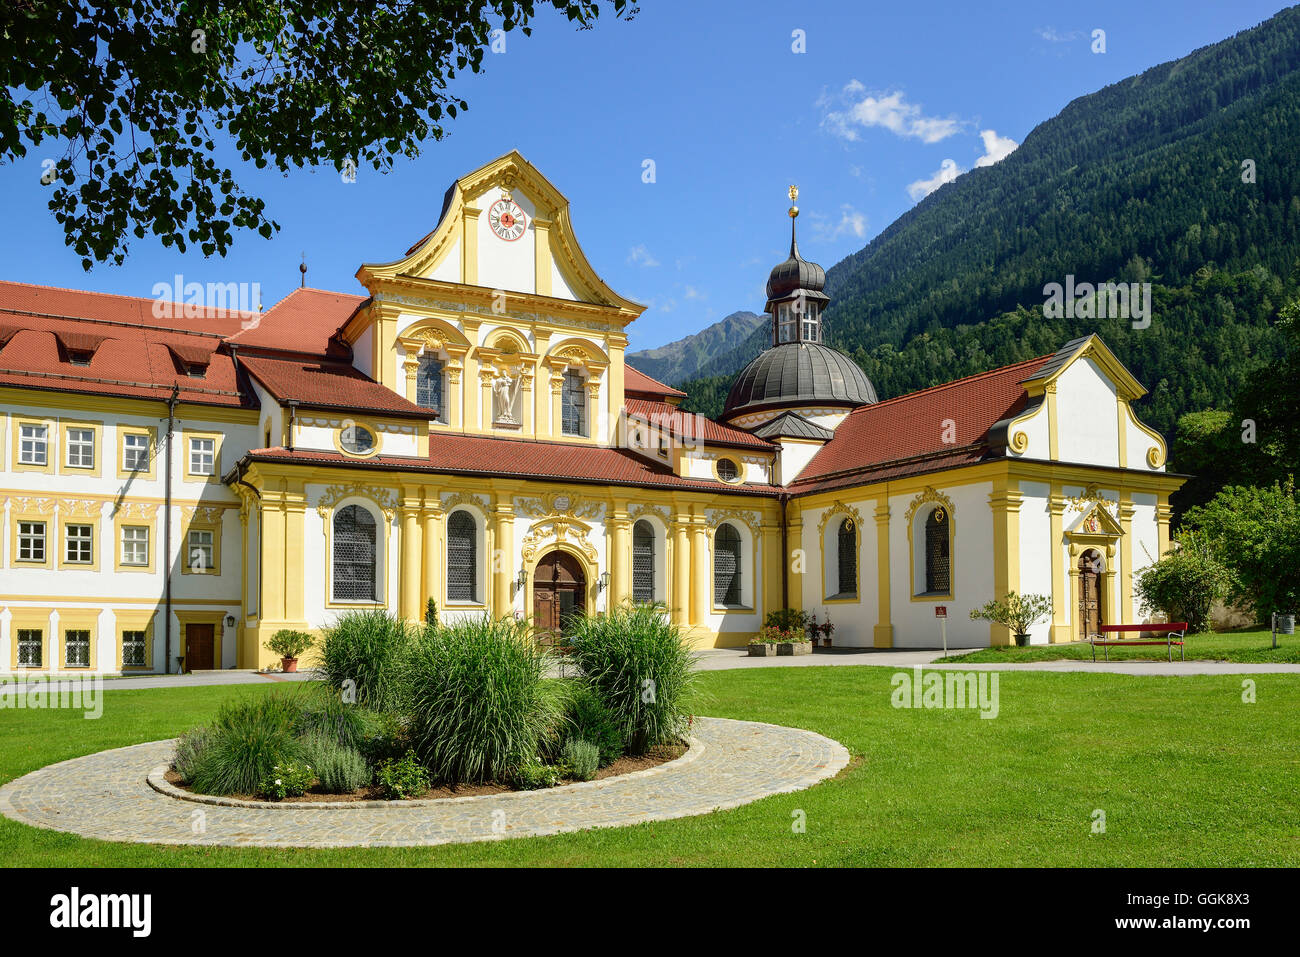 Monastery Stams, Stams, Tyrol, Austria Stock Photo